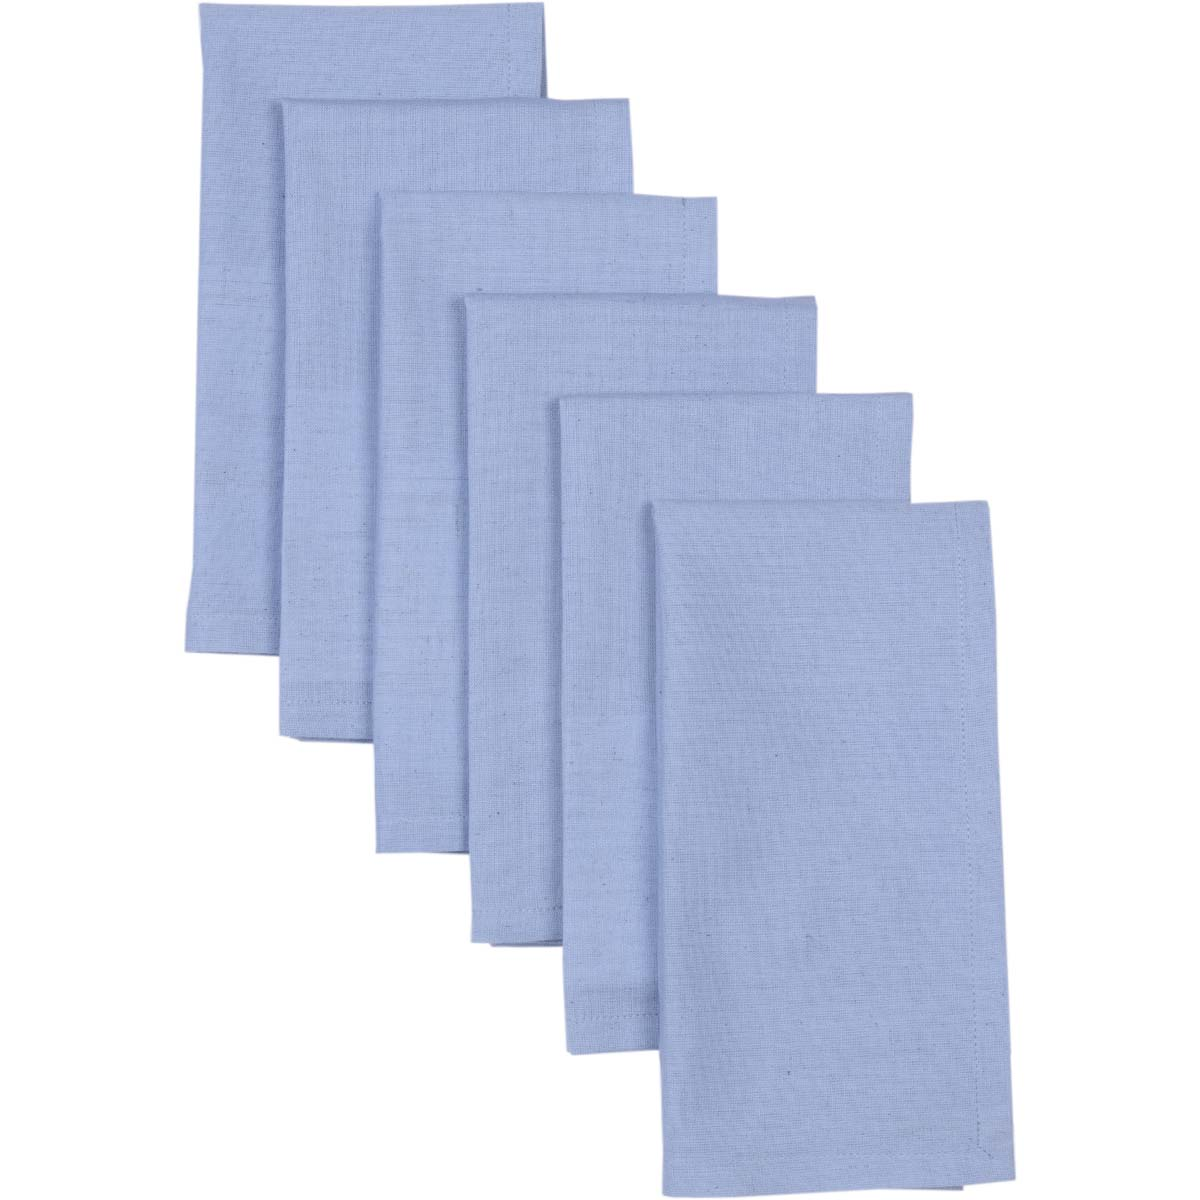 Sara-Light-Blue-Napkin-Set-of-6-18x18-image-2